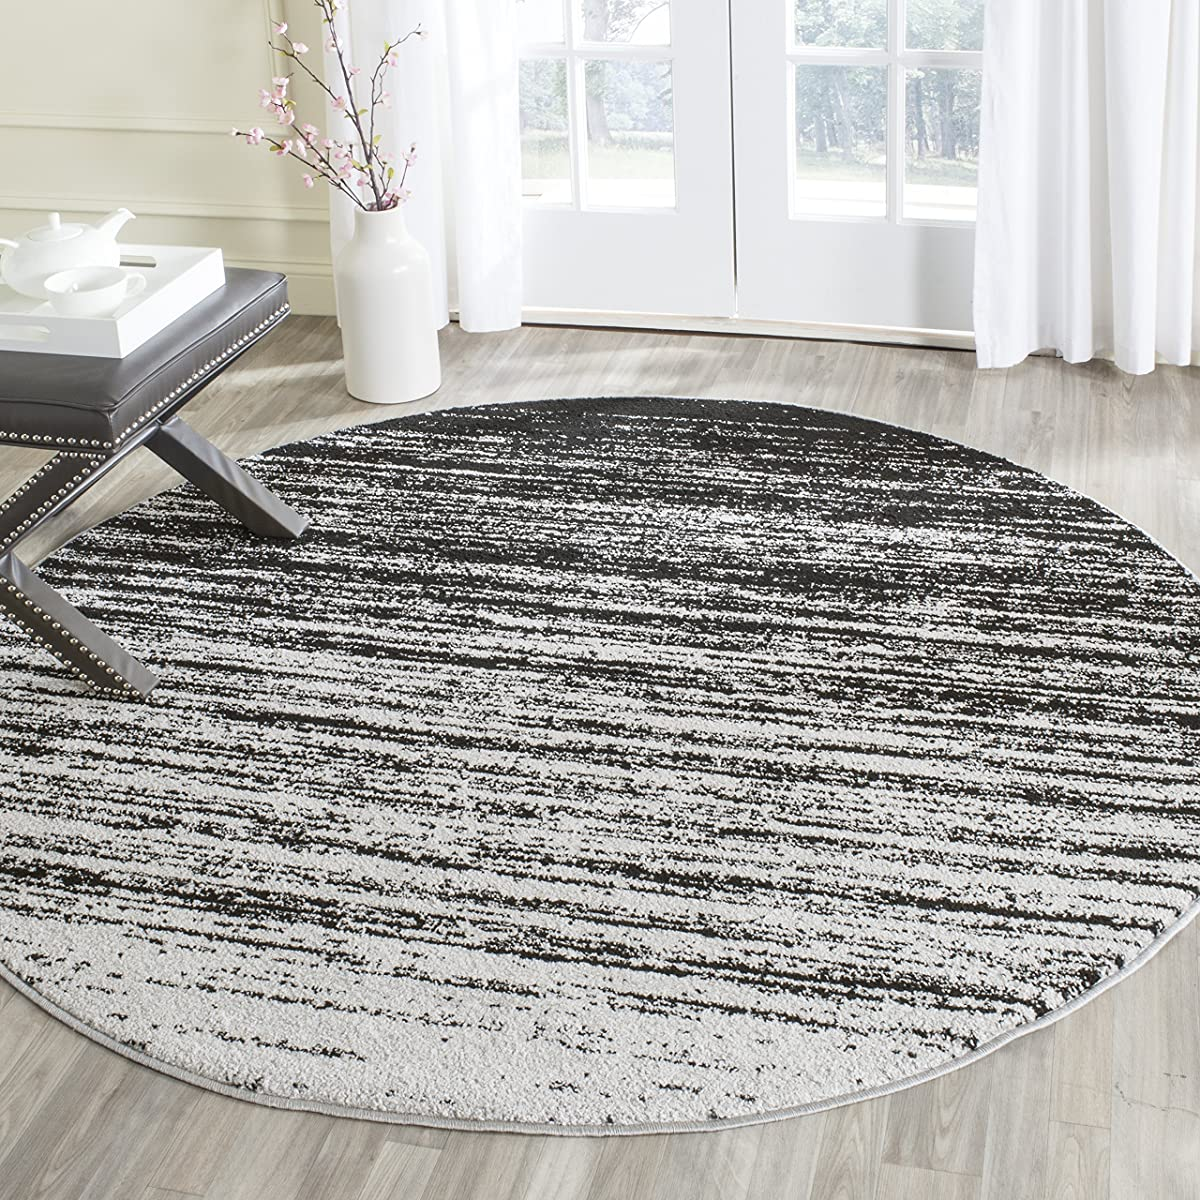 Safavieh Adirondack Collection ADR113A Silver and Black Modern Abstract Round Area Rug (4 in Diameter)